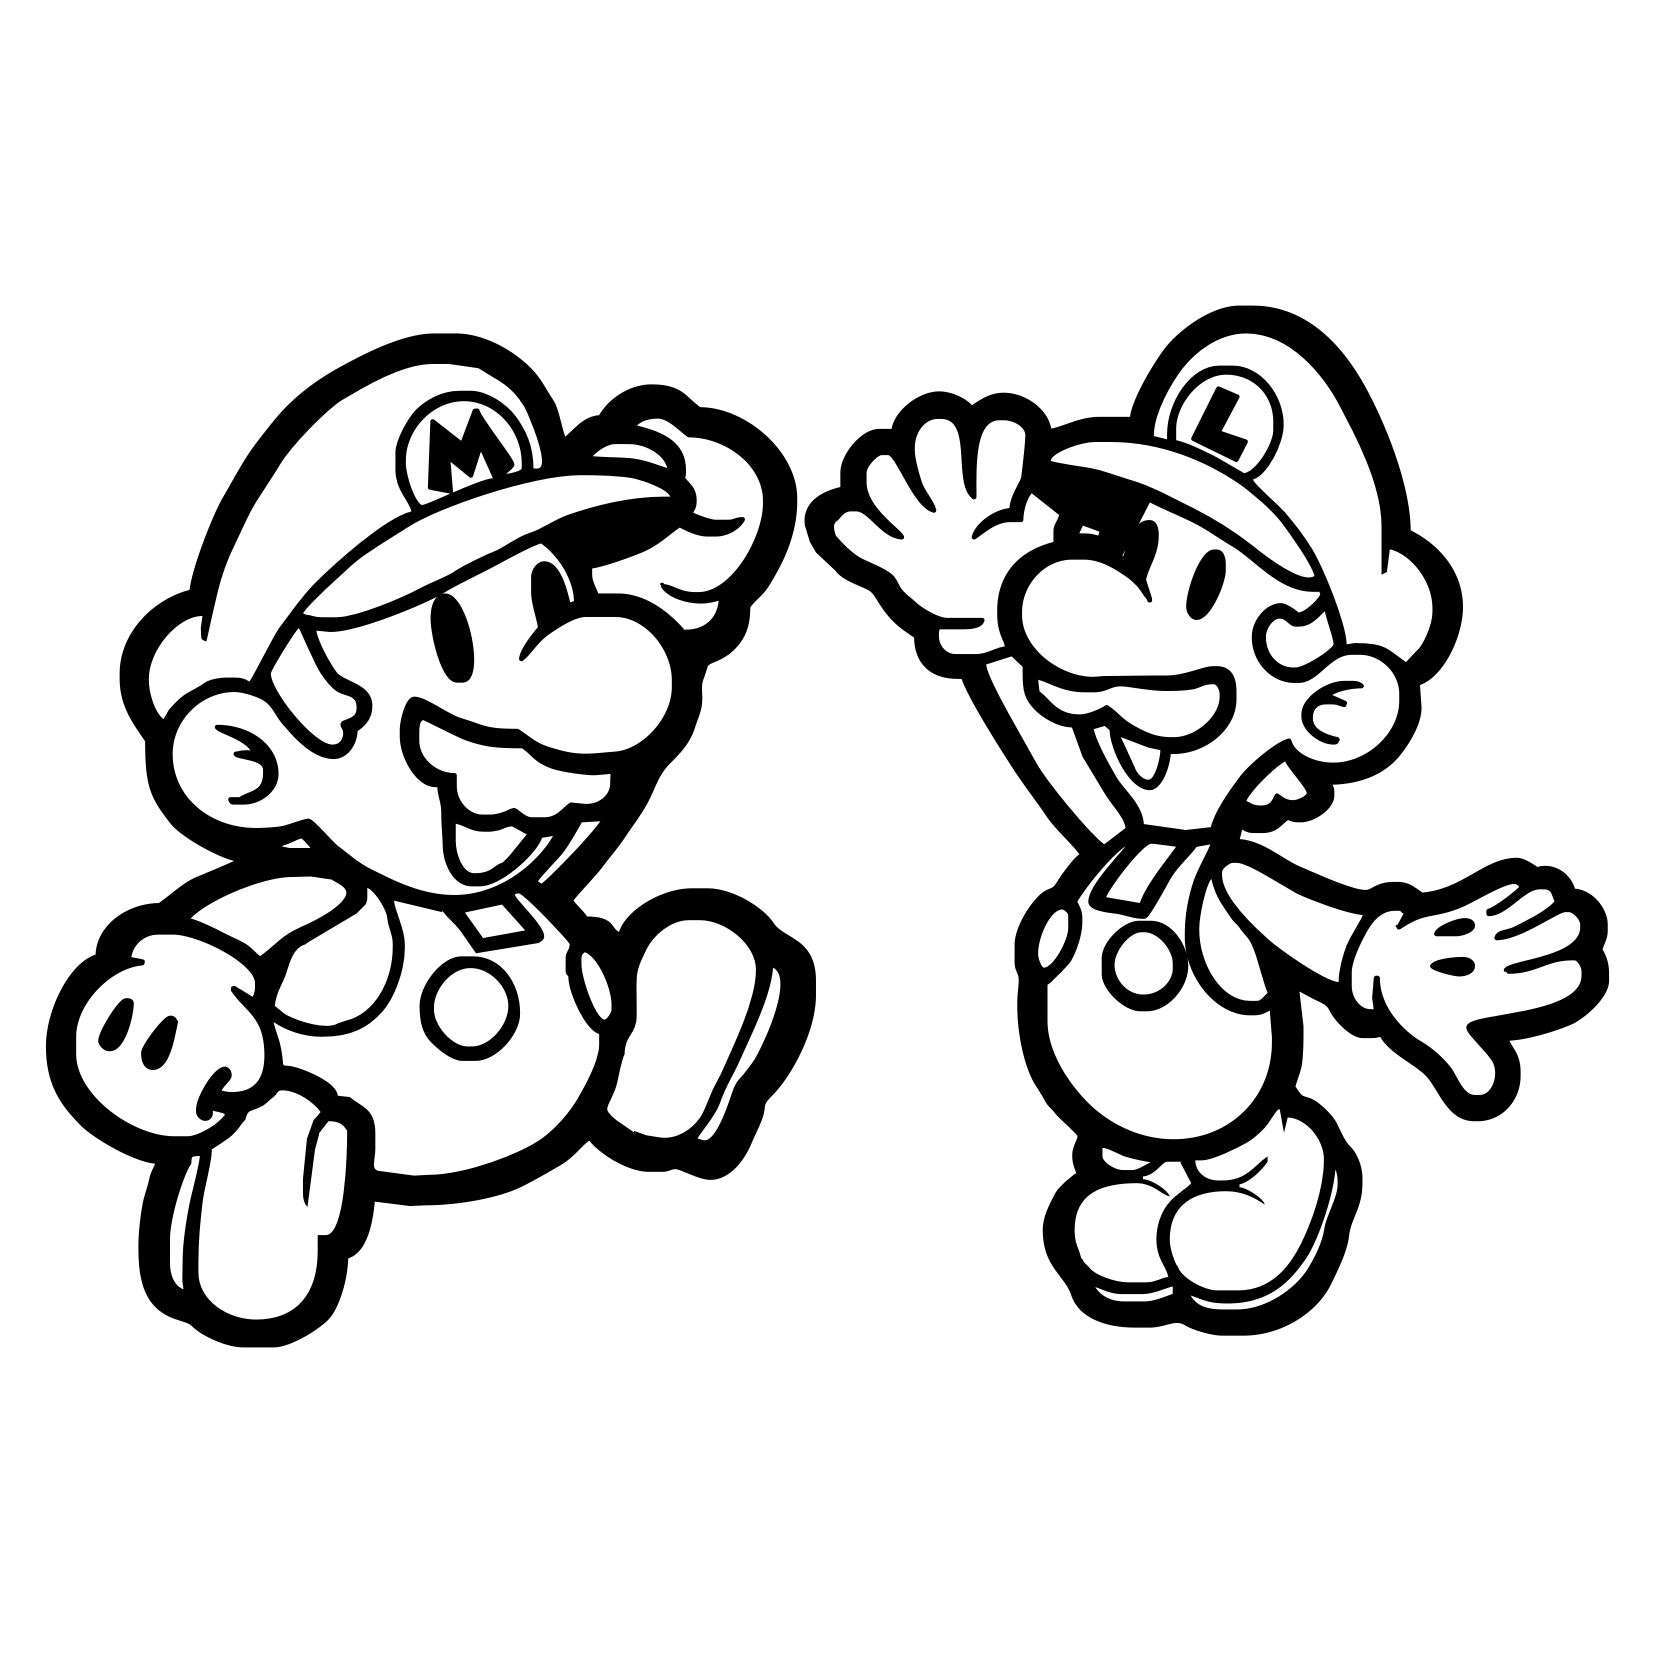 Super Mario Odyssey Coloring Pages to Print Download Of Super Mario Bros Coloring Pages to Print